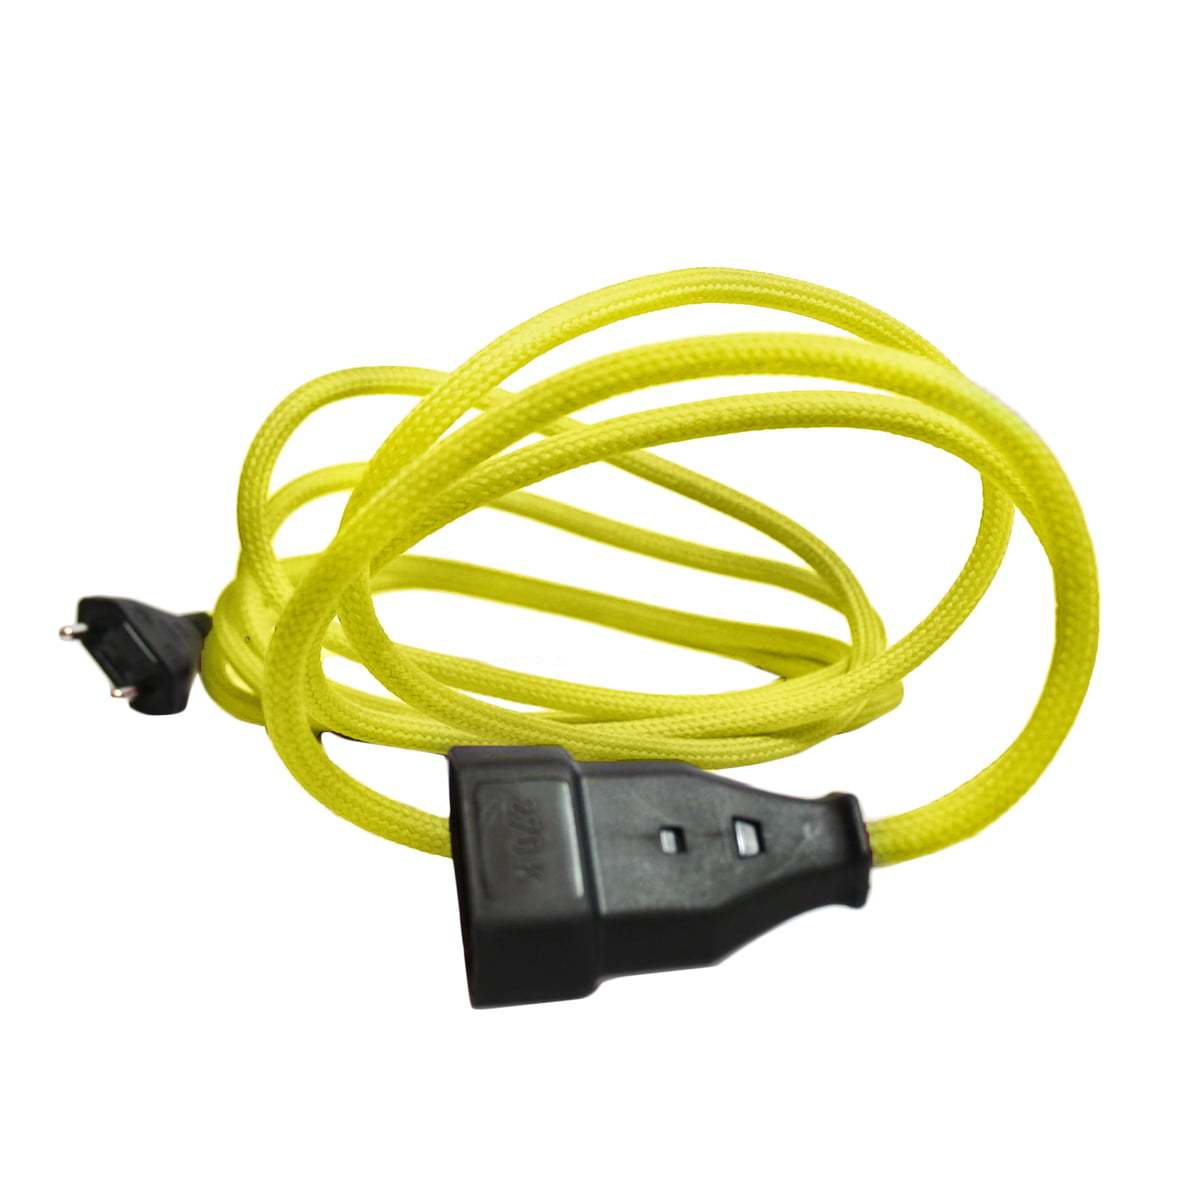 Nud Extension Cord Nud Collection Shop